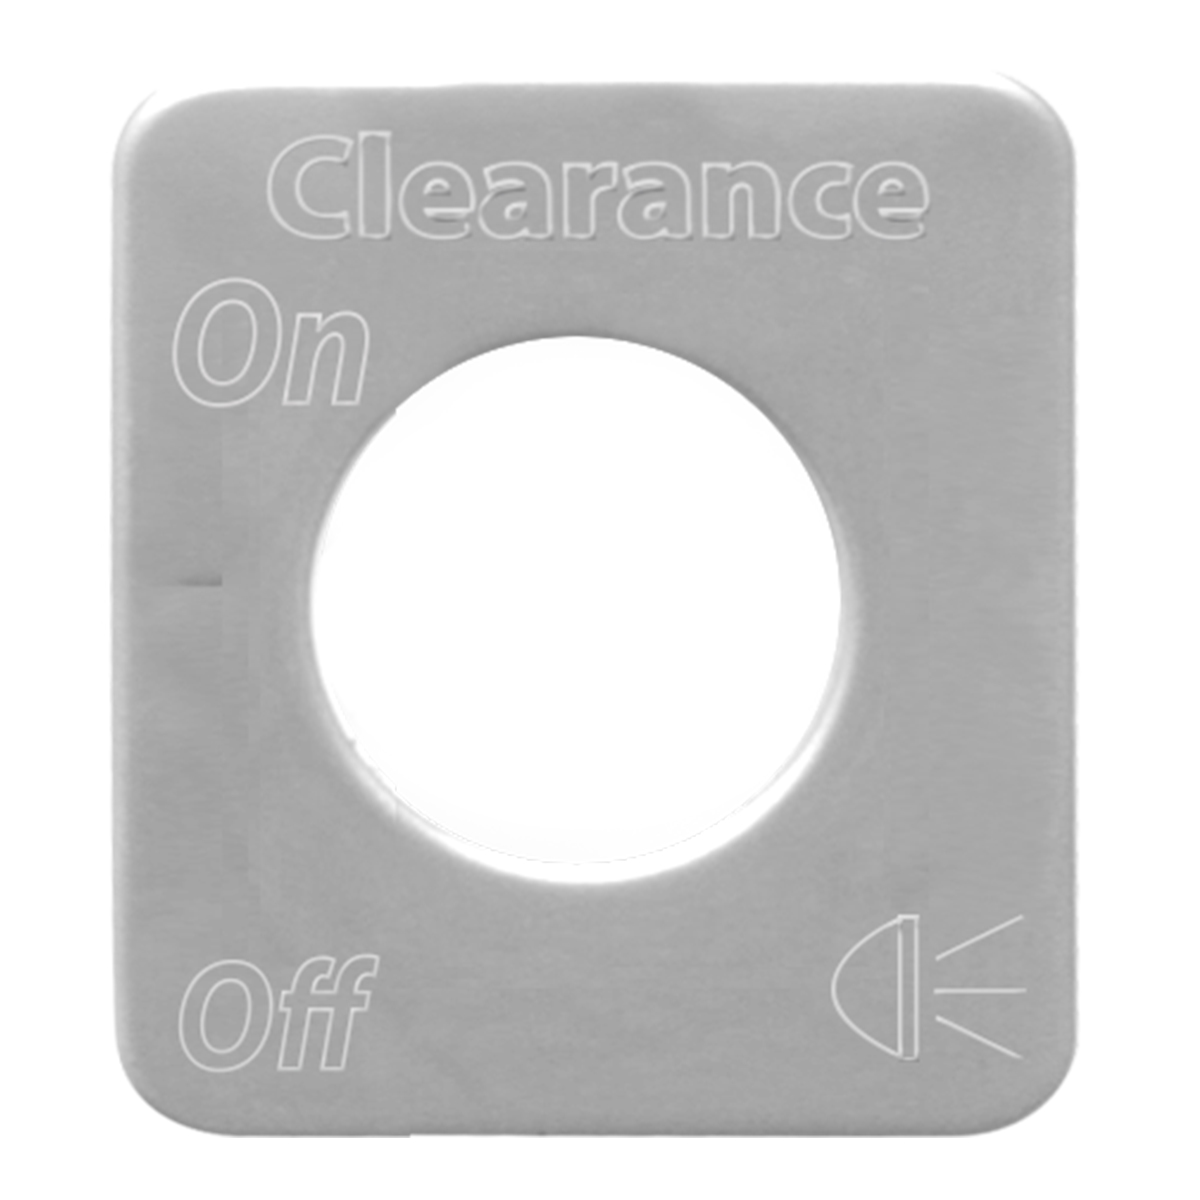 68533 Stainless Steel Clearance Light Switch Plate for KW